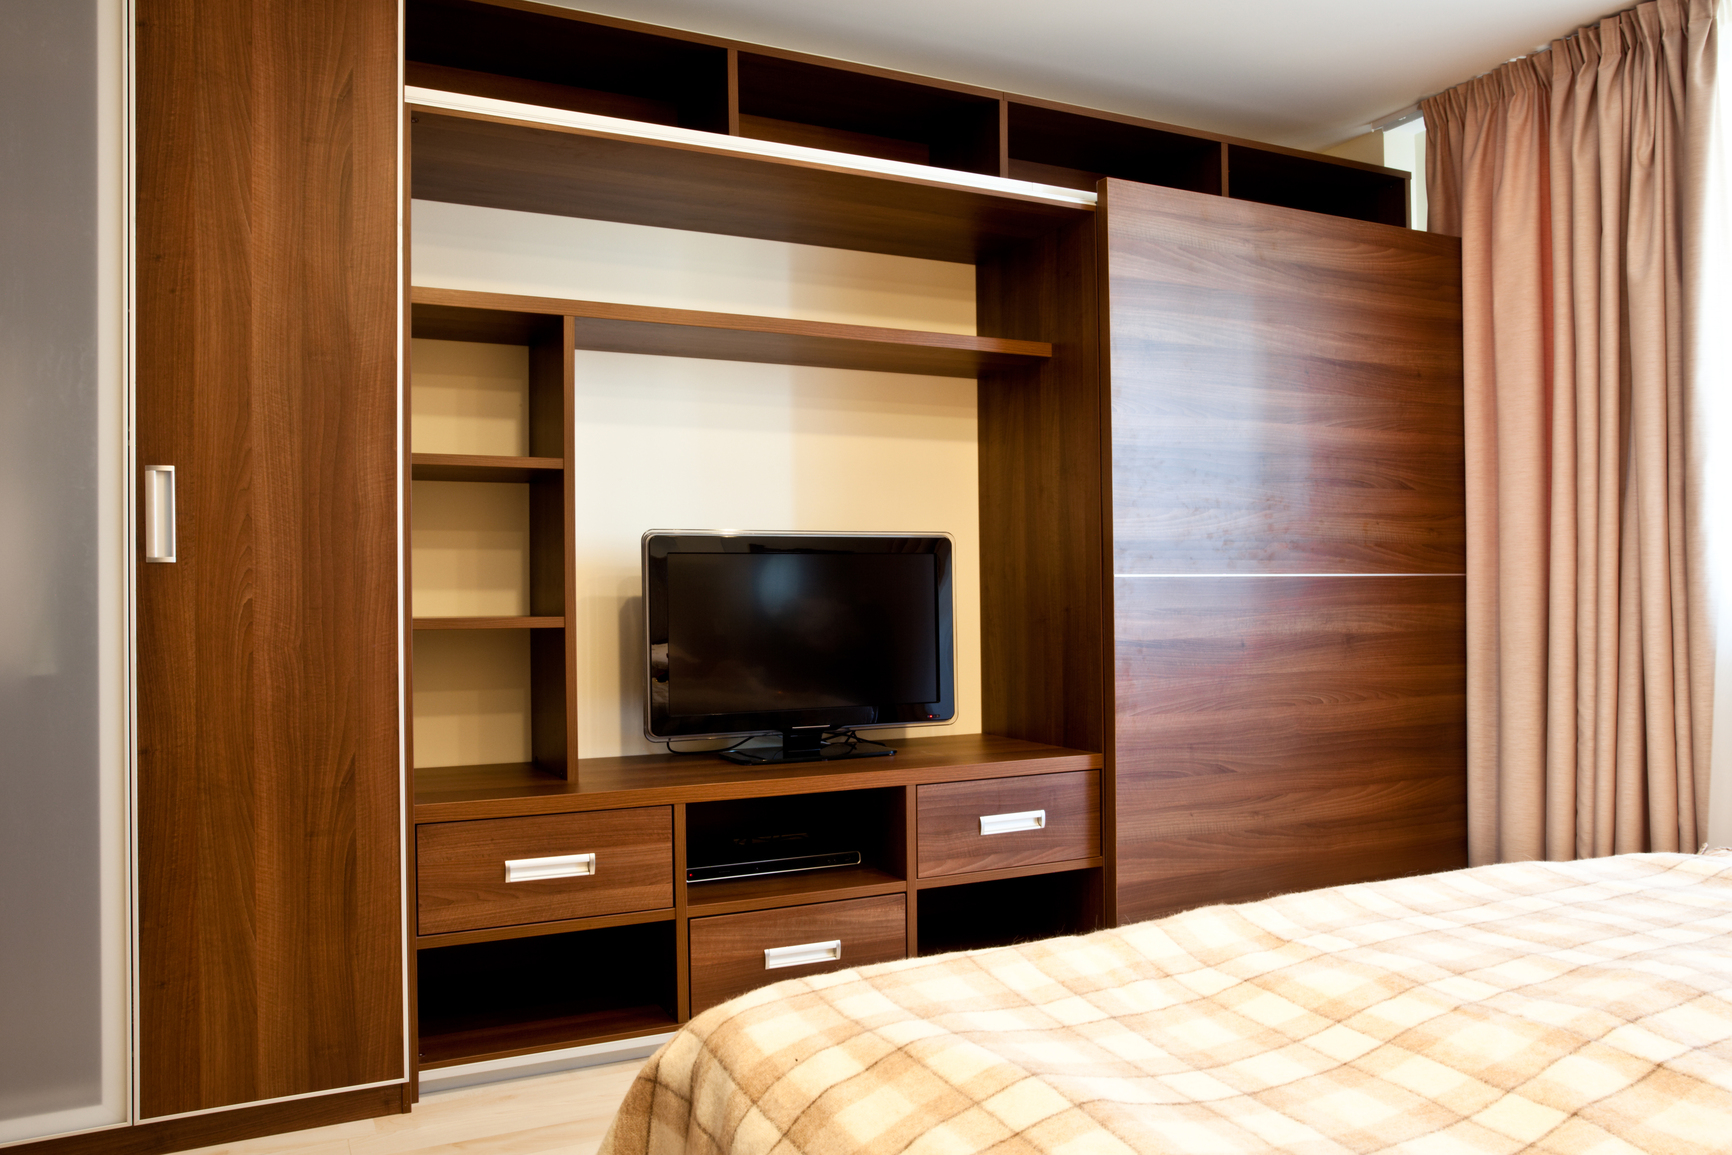 fitted-wardrobe Discount offers with Affordable finance plans